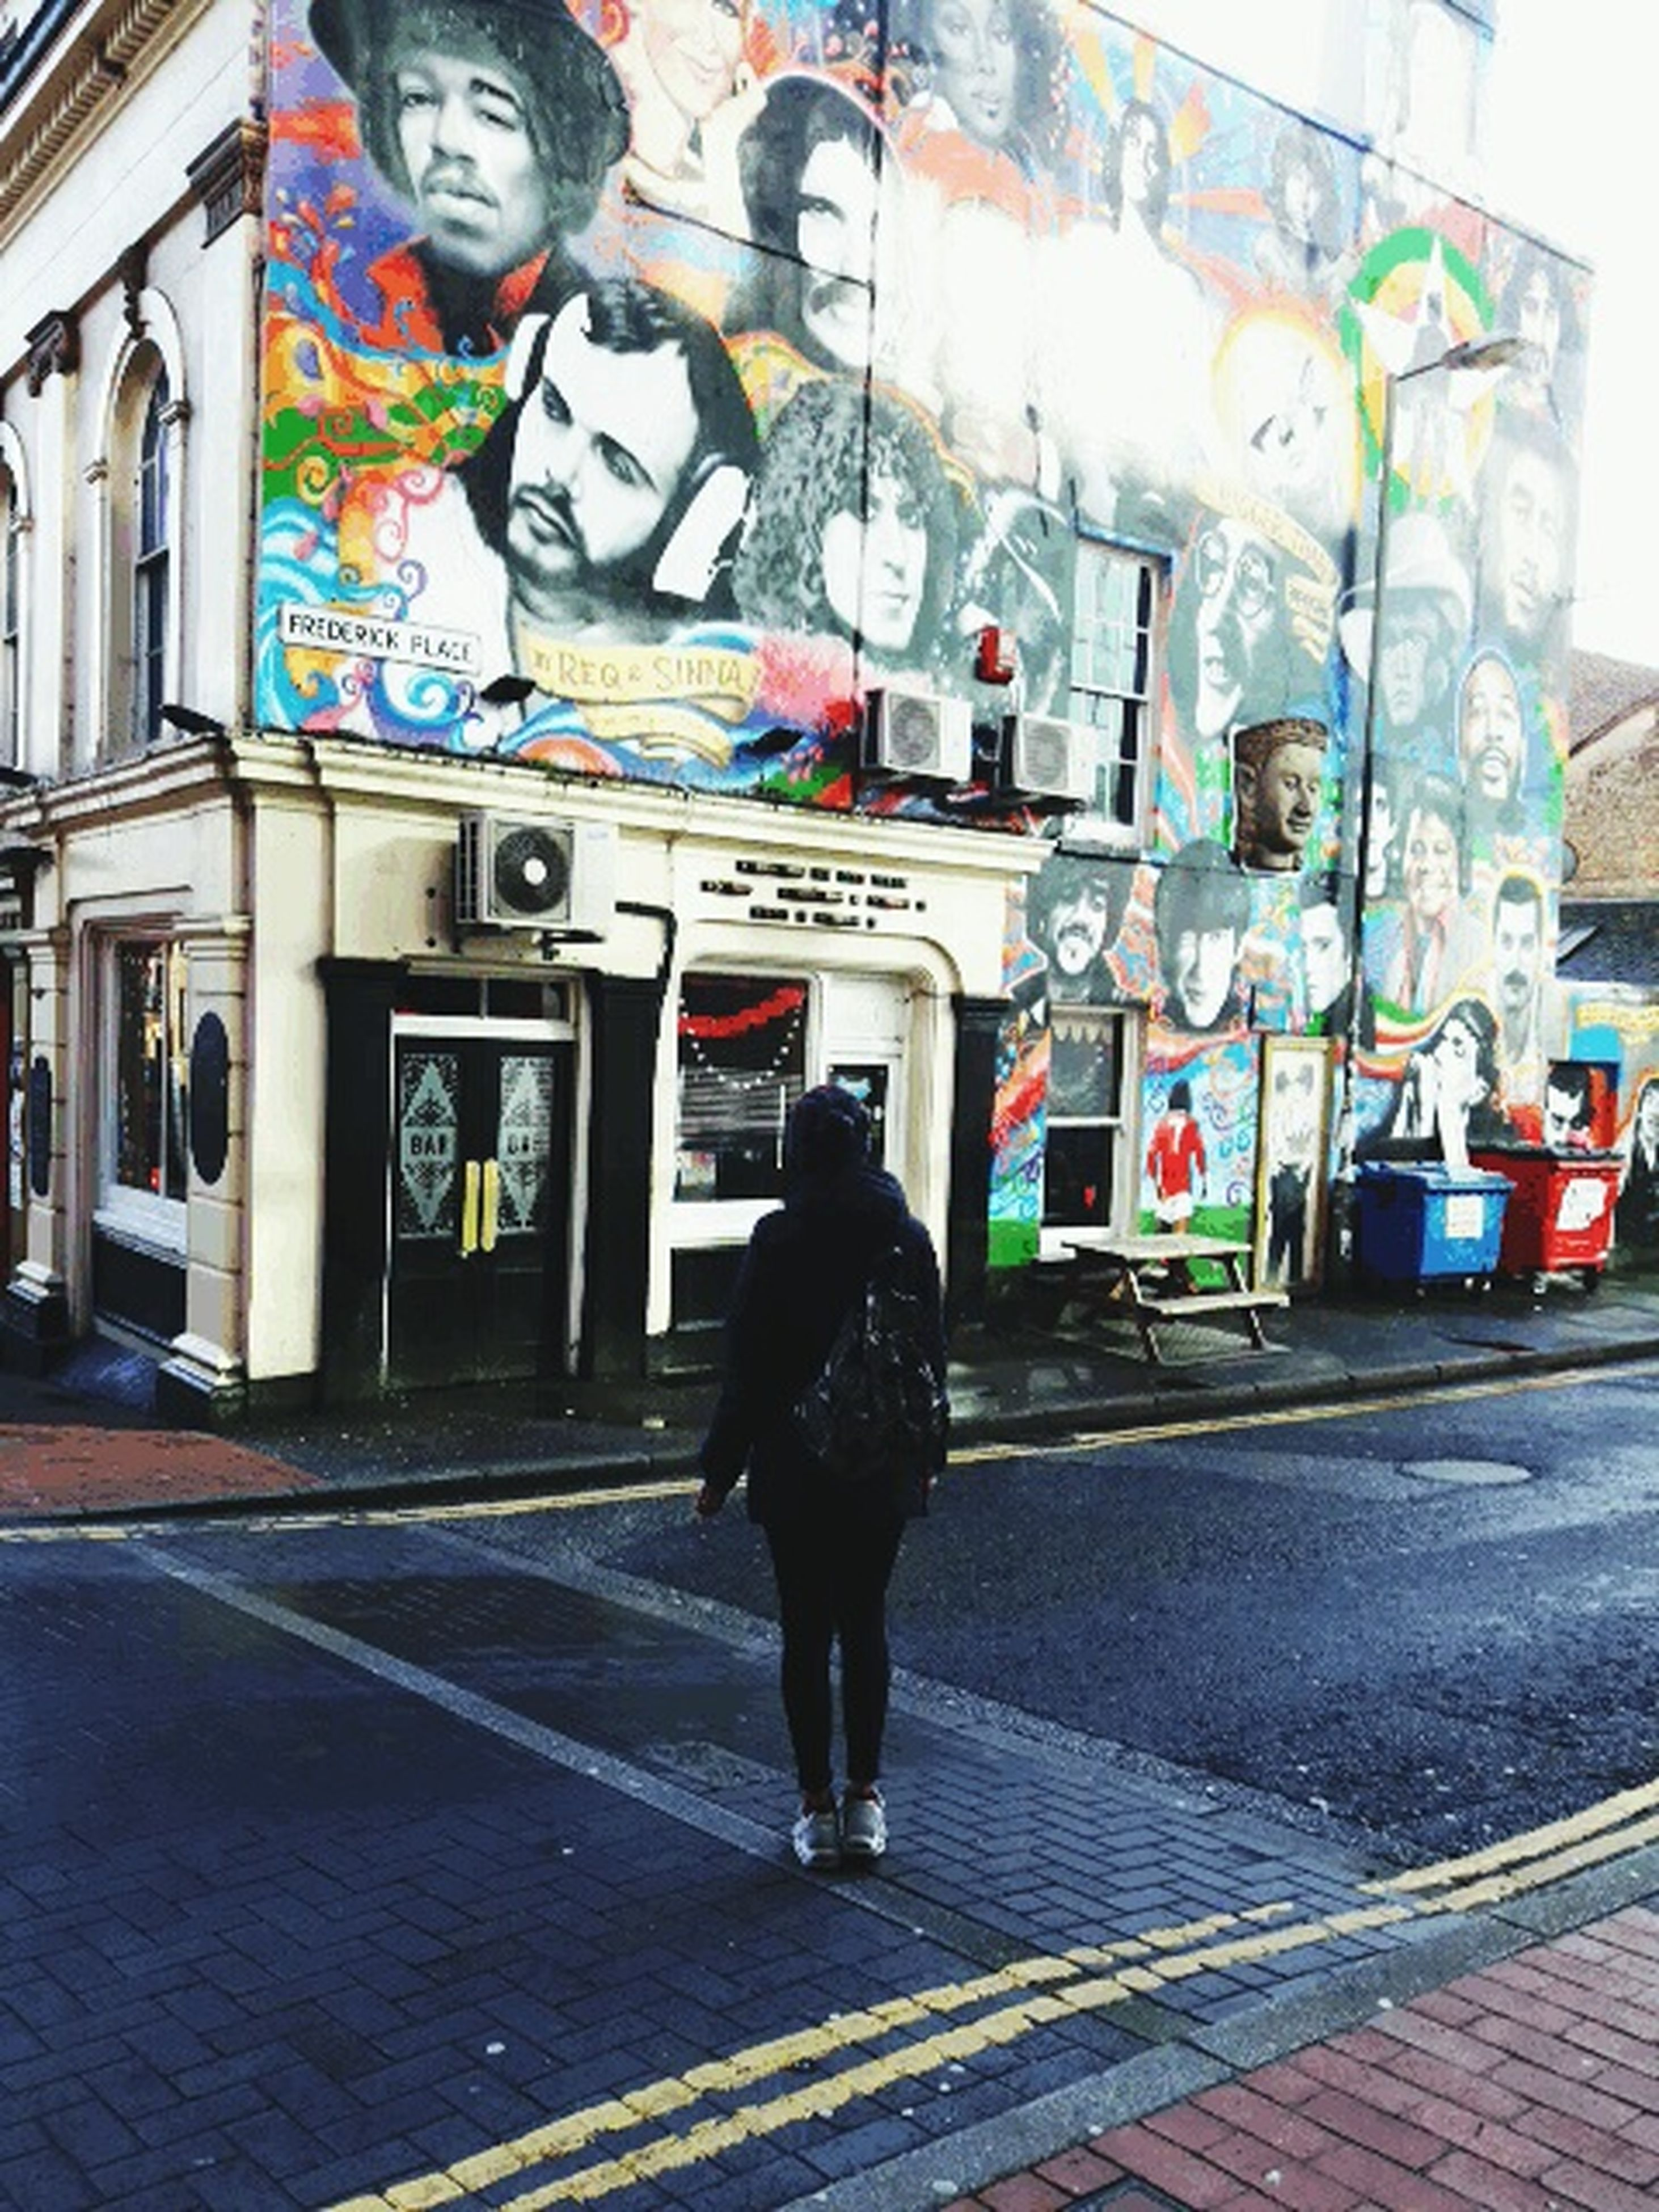 full length, lifestyles, architecture, building exterior, built structure, casual clothing, graffiti, rear view, standing, walking, street, men, leisure activity, person, city, front view, day, sidewalk